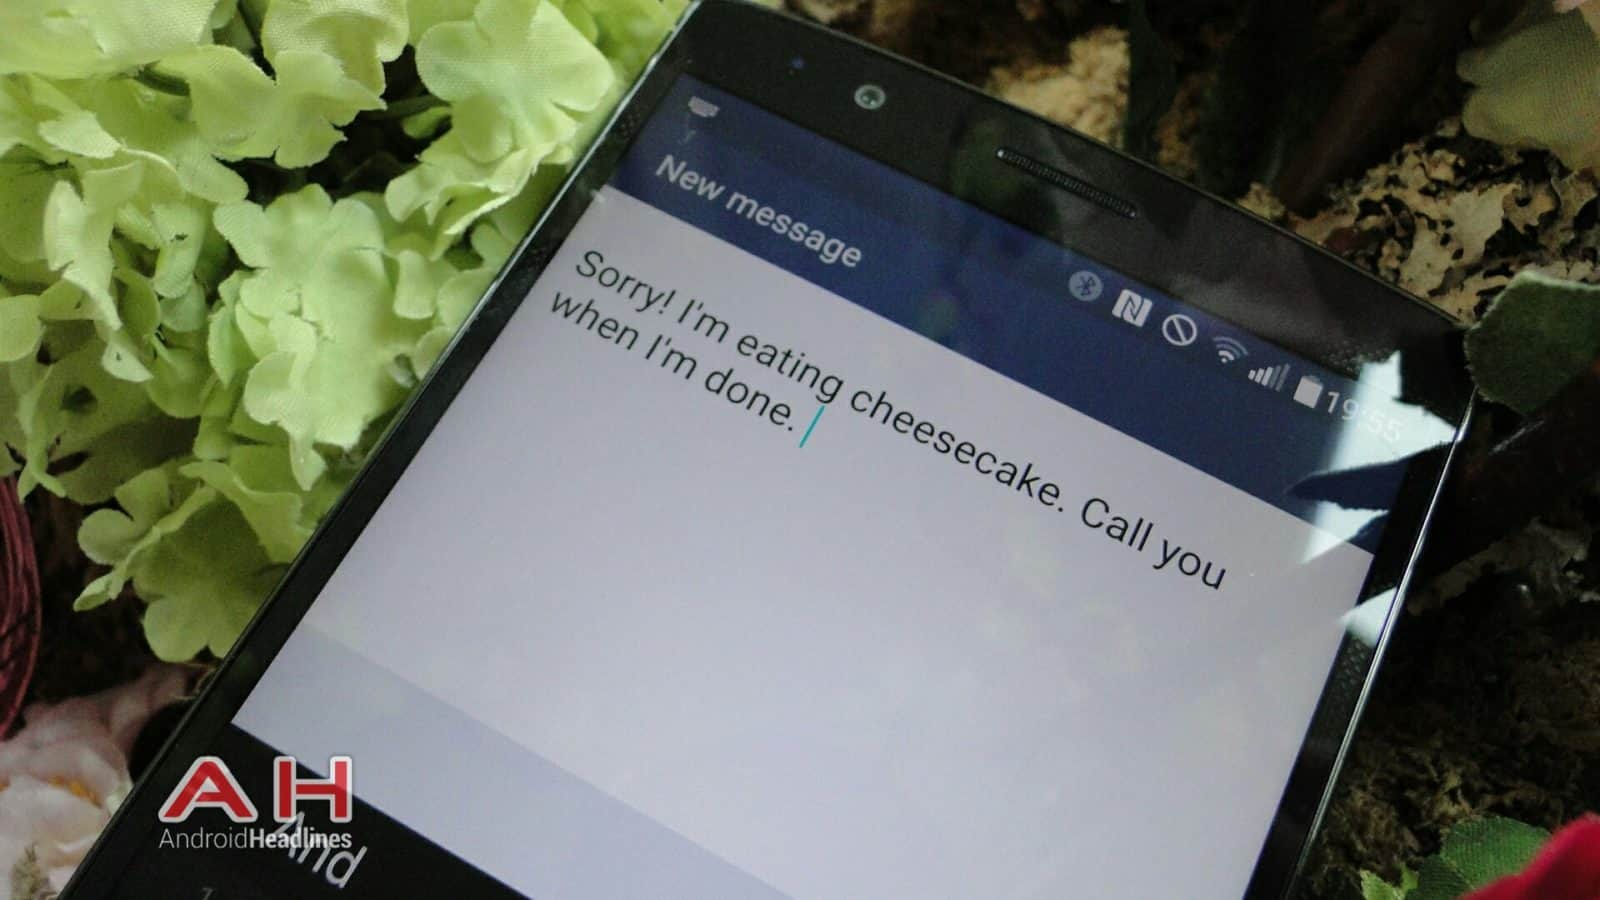 AH LG G4 custom sms reject call message